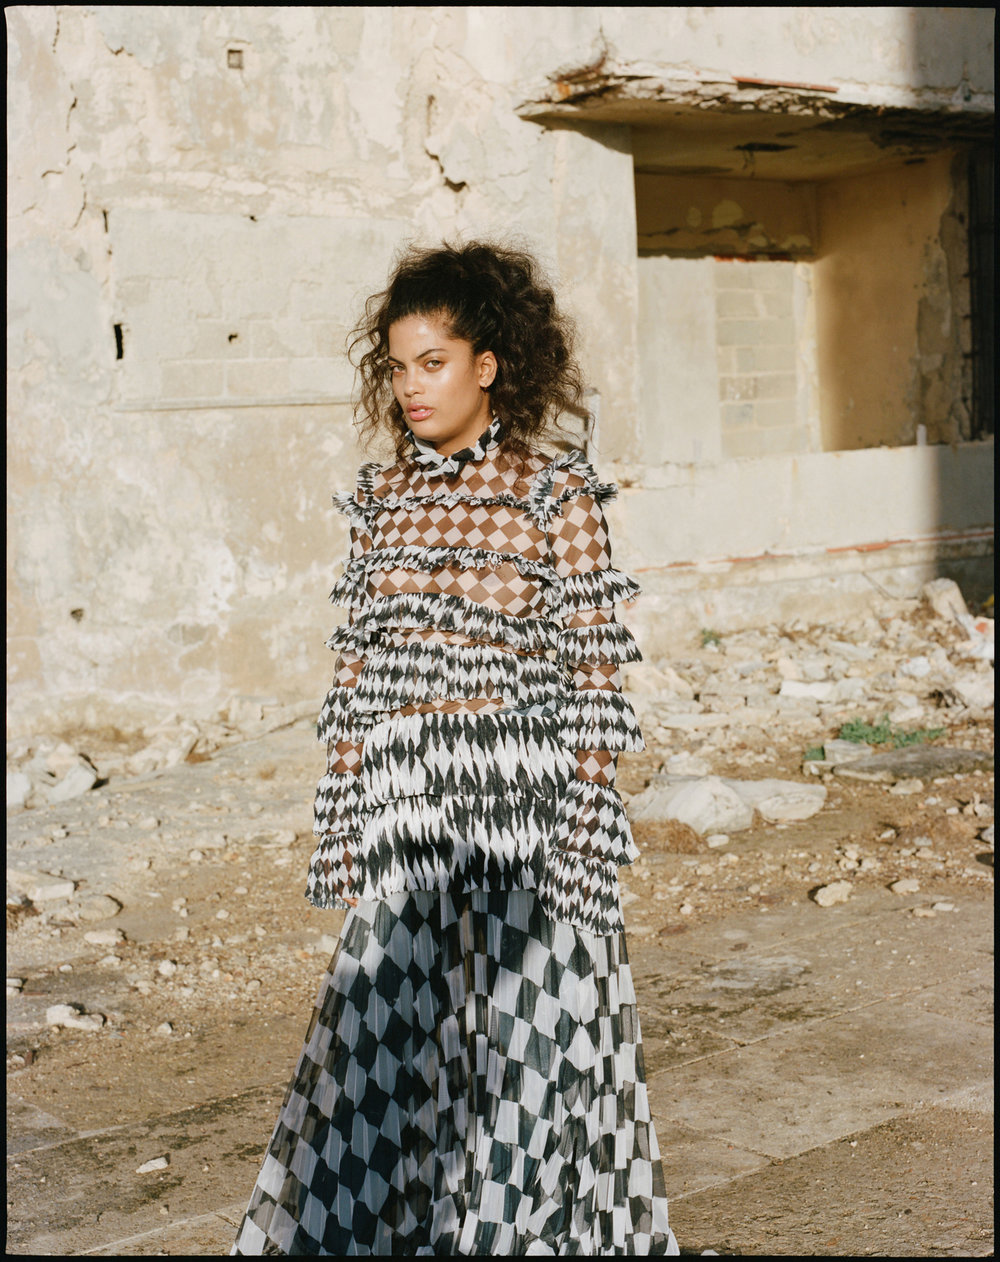 amber_mahoney_ibeyi_fader_magazine_cuba_film_photography_015.jpg